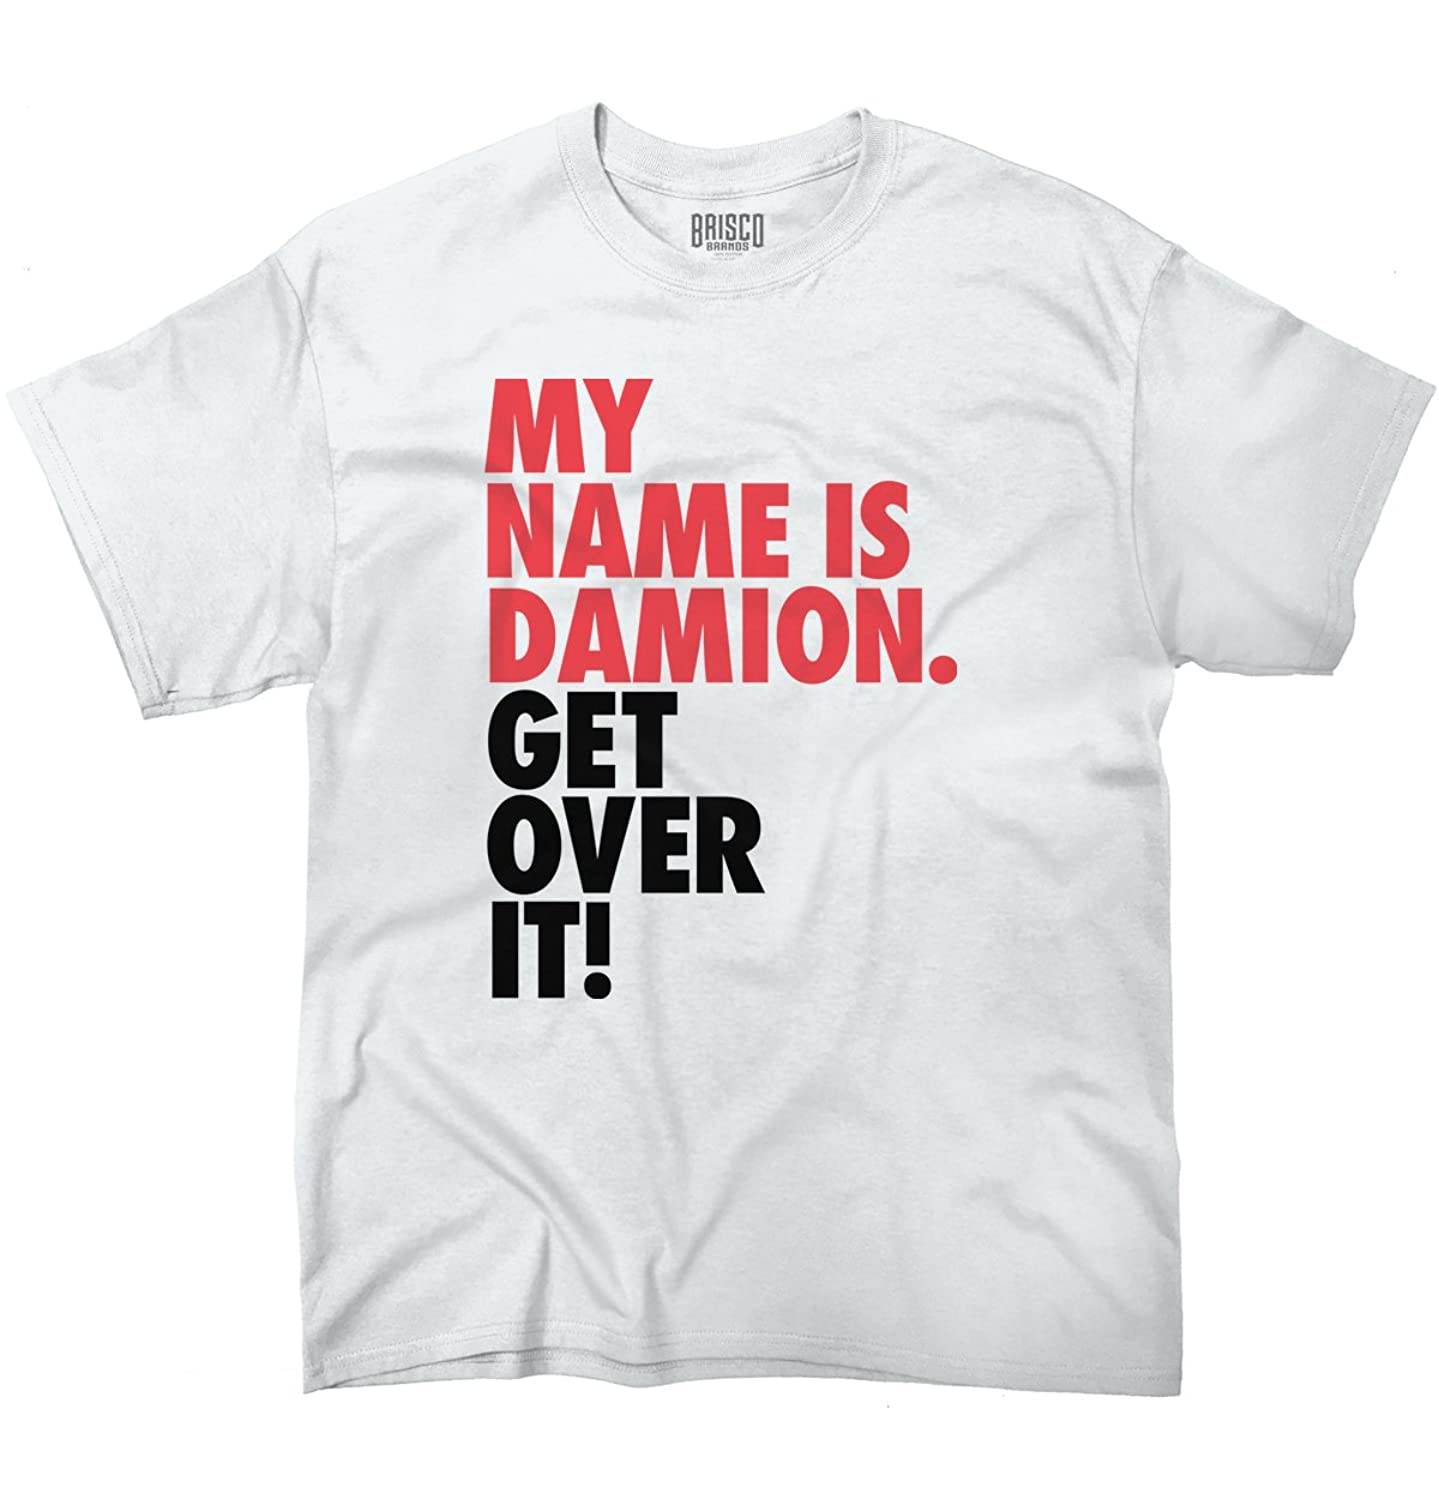 Cool My Name is DAMION Get Over it Funny Quote Fashion T-Shirt